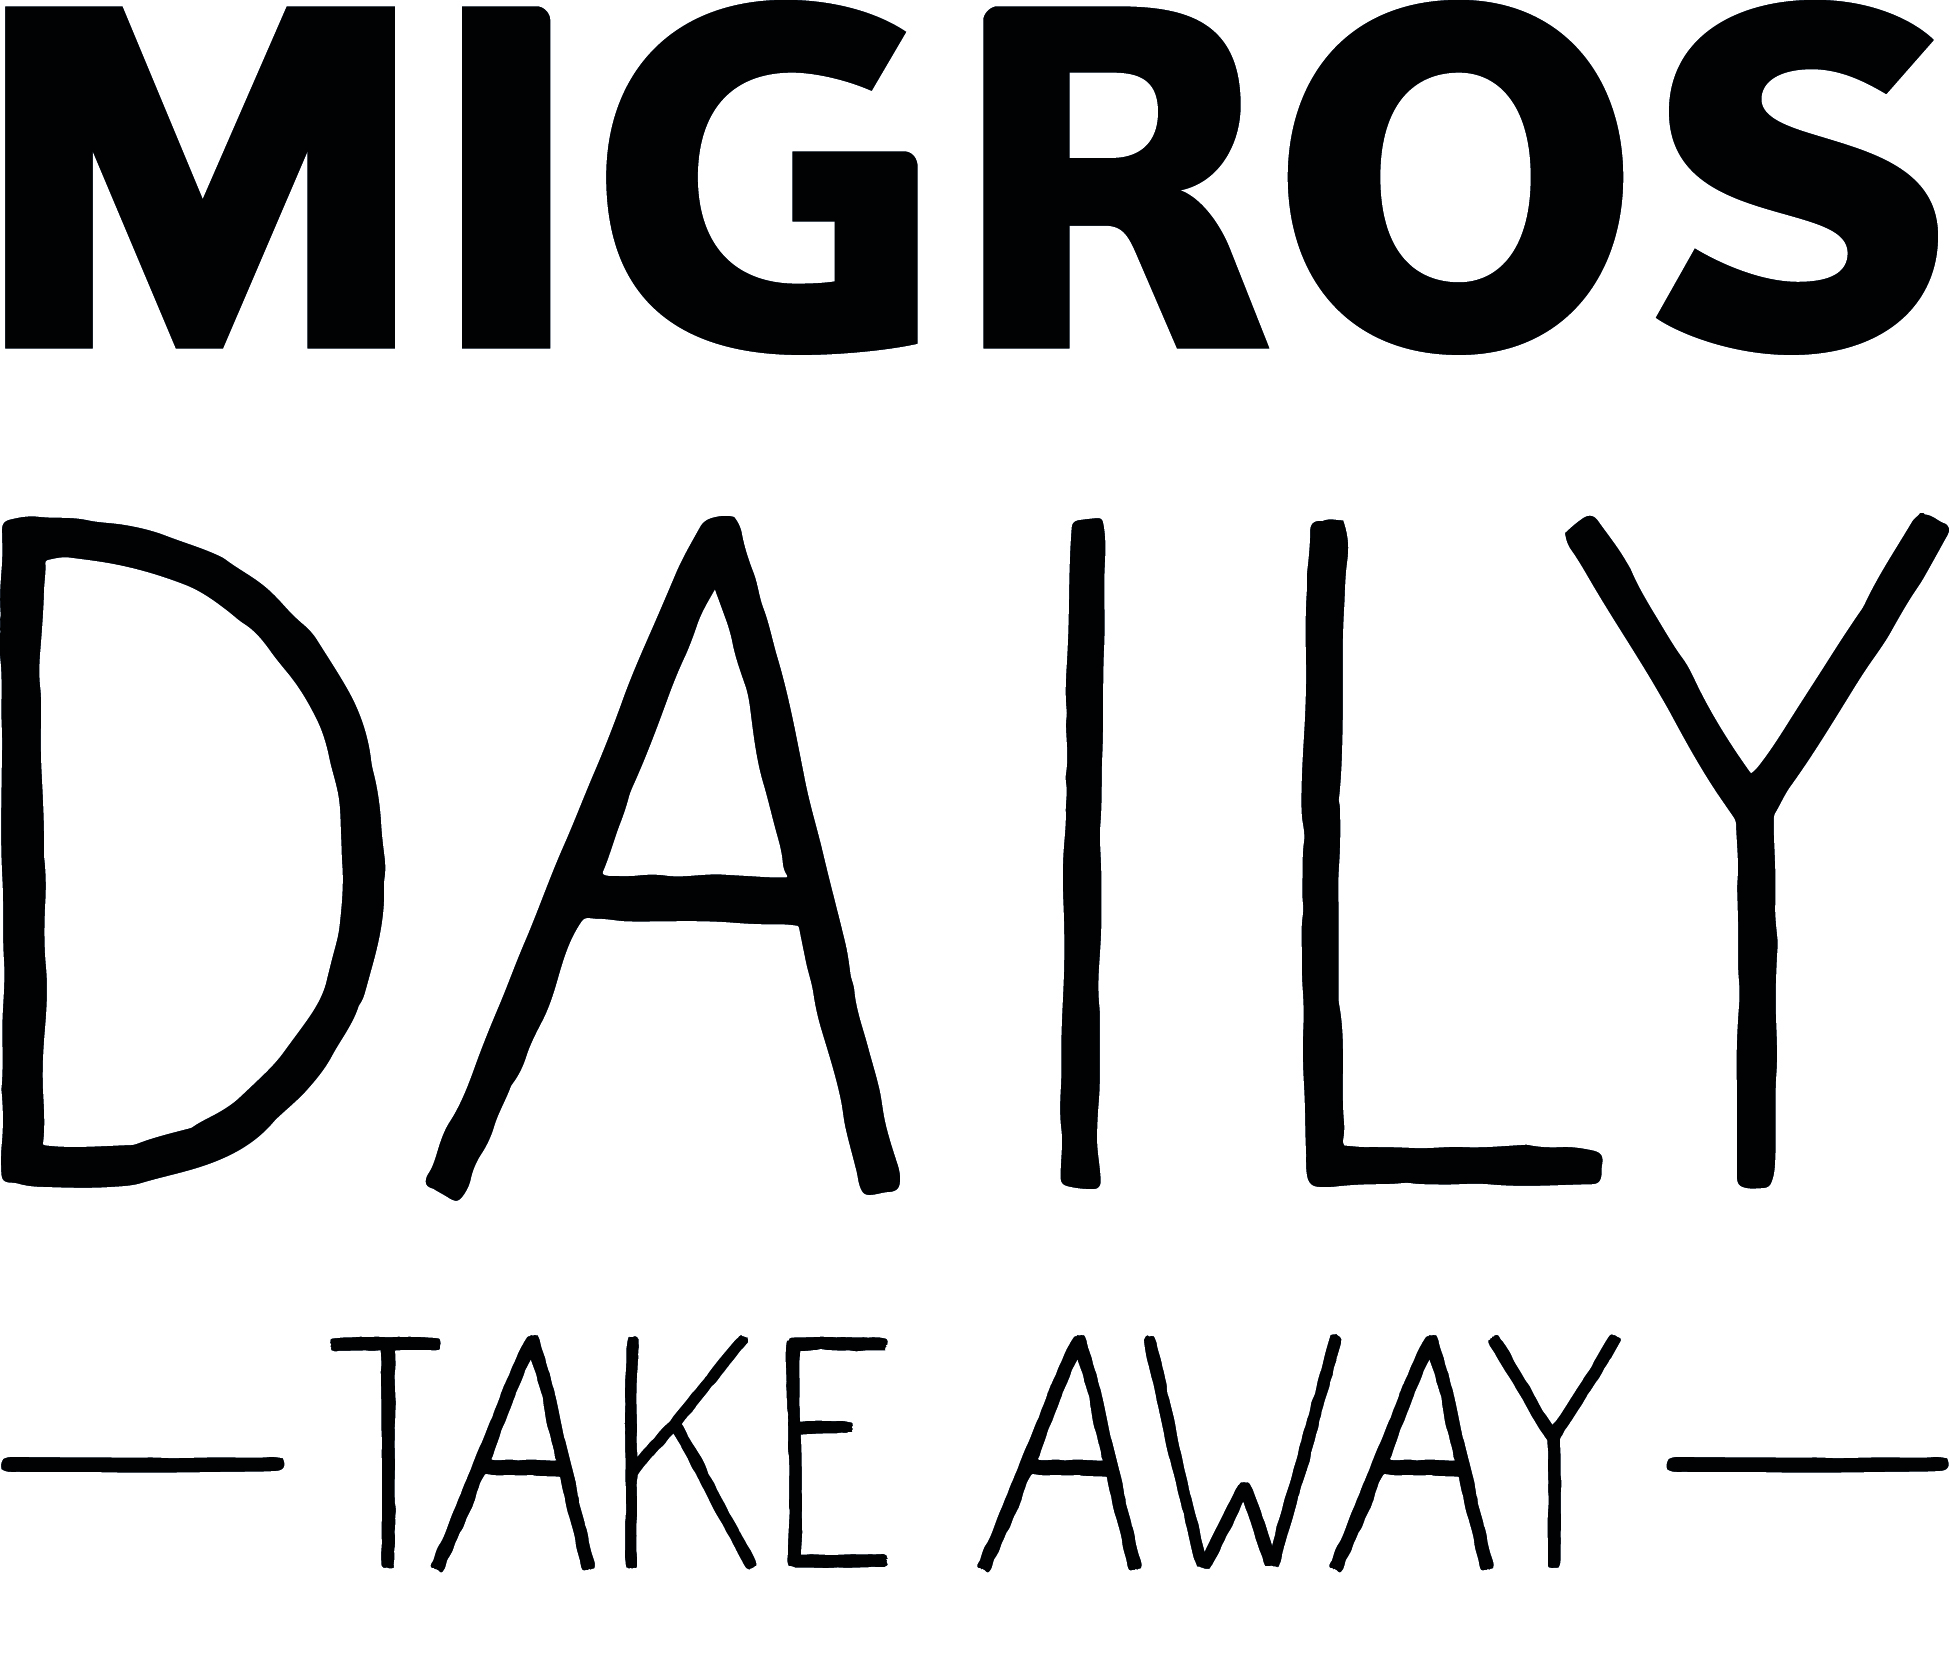 Migros Daily Take Away (Bahnhof)